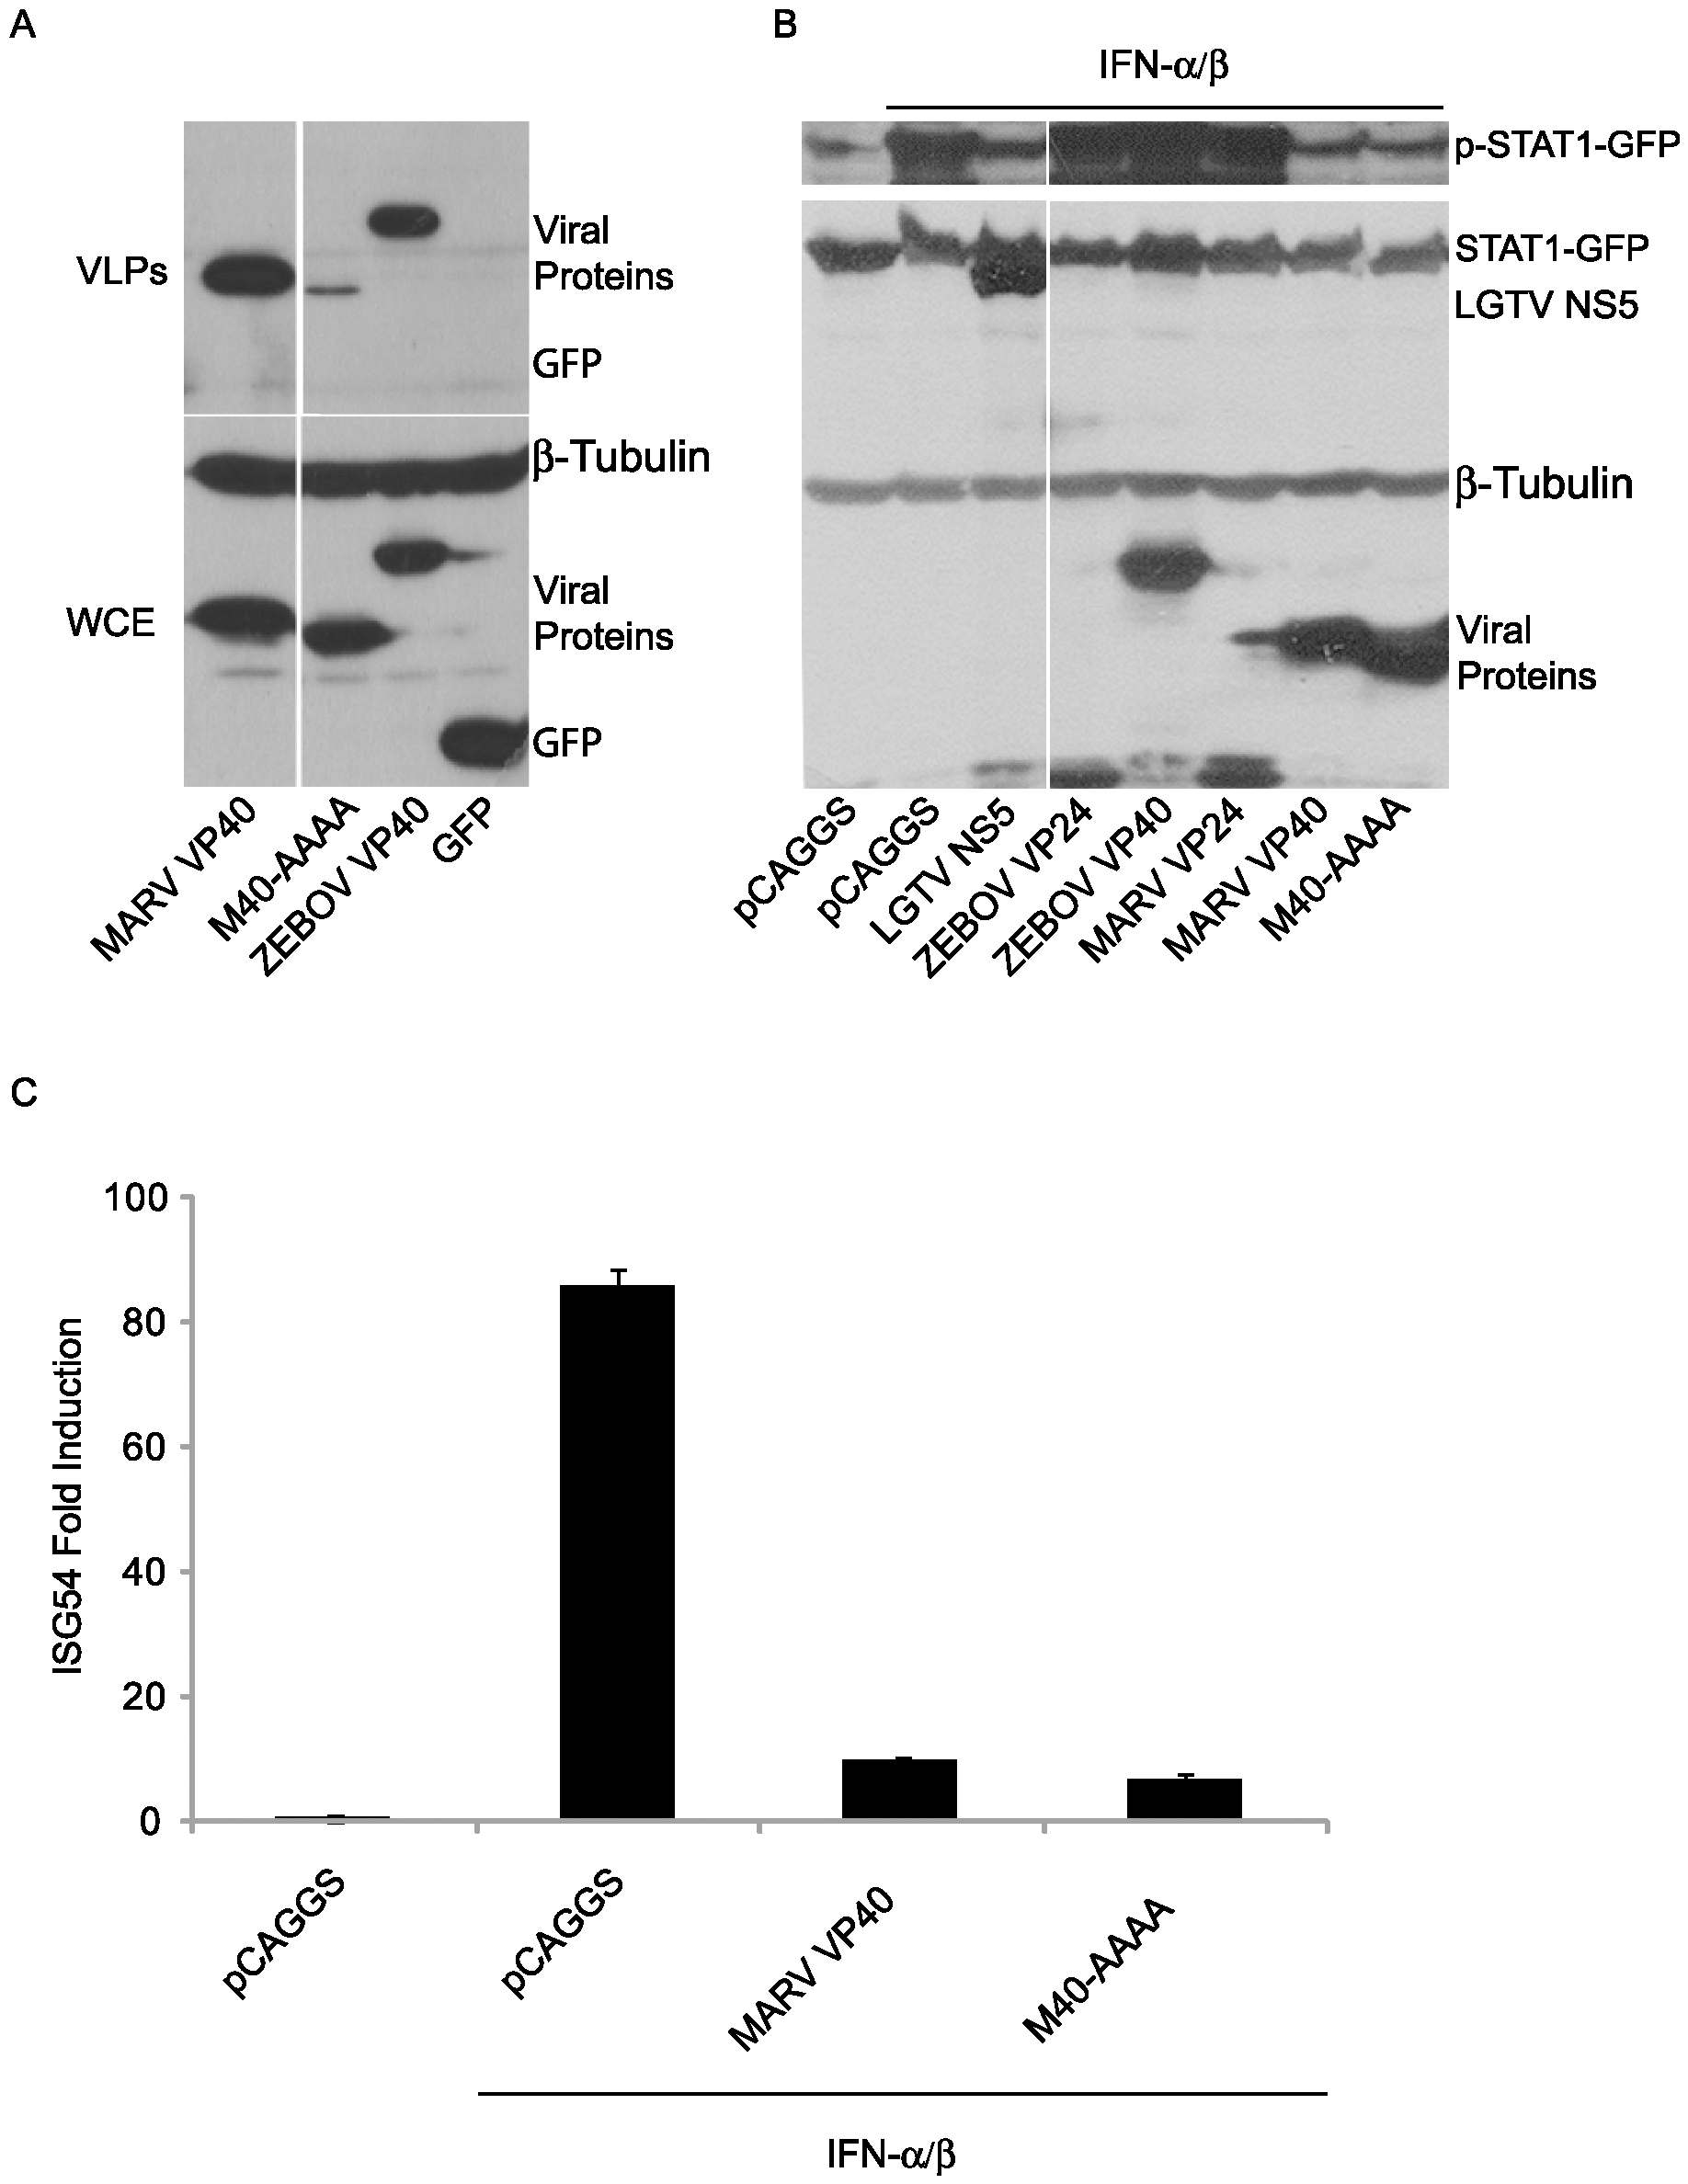 MARV VP40 inhibition of IFN signaling does not require an intact late domain.